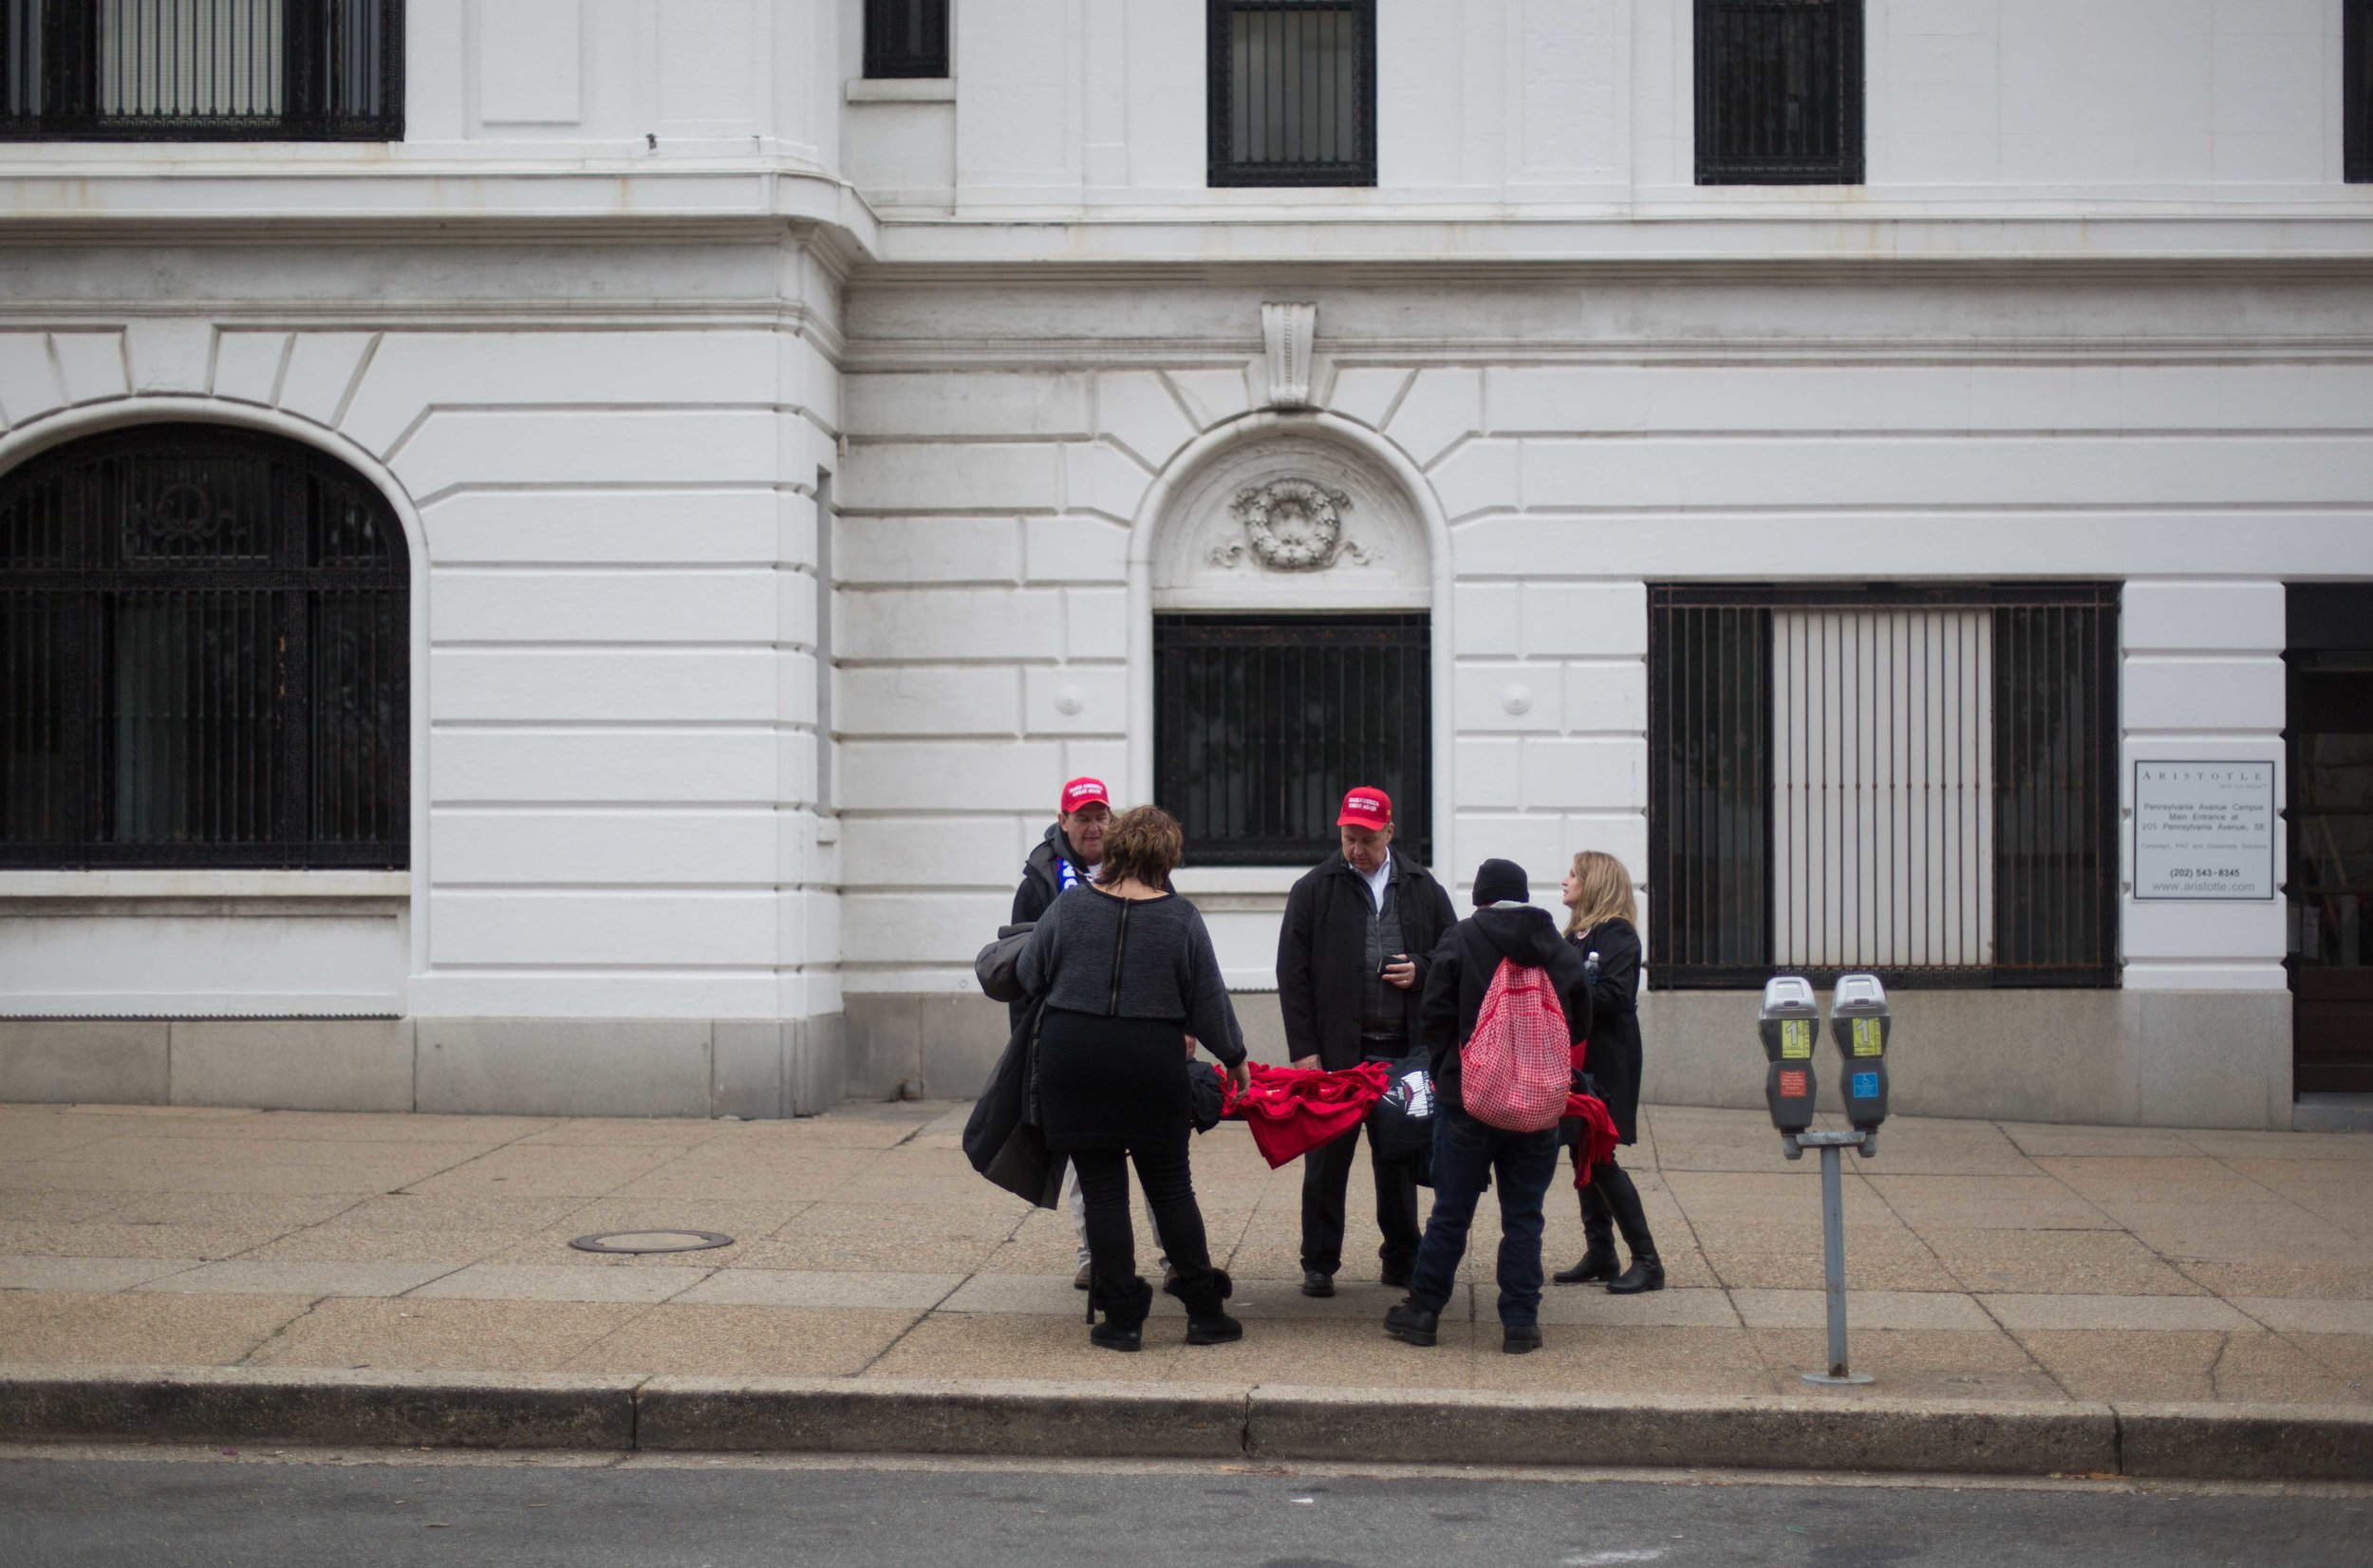 """Another deserted scene, right off the inauguration route - three supporters buy Trump merchandise from a street vendor. One of the supporters laughed about the origin of the garments with me and Rachel, thinking we were Pro-Trump, saying, """"Everything's from Mexico - can you believe it??"""""""